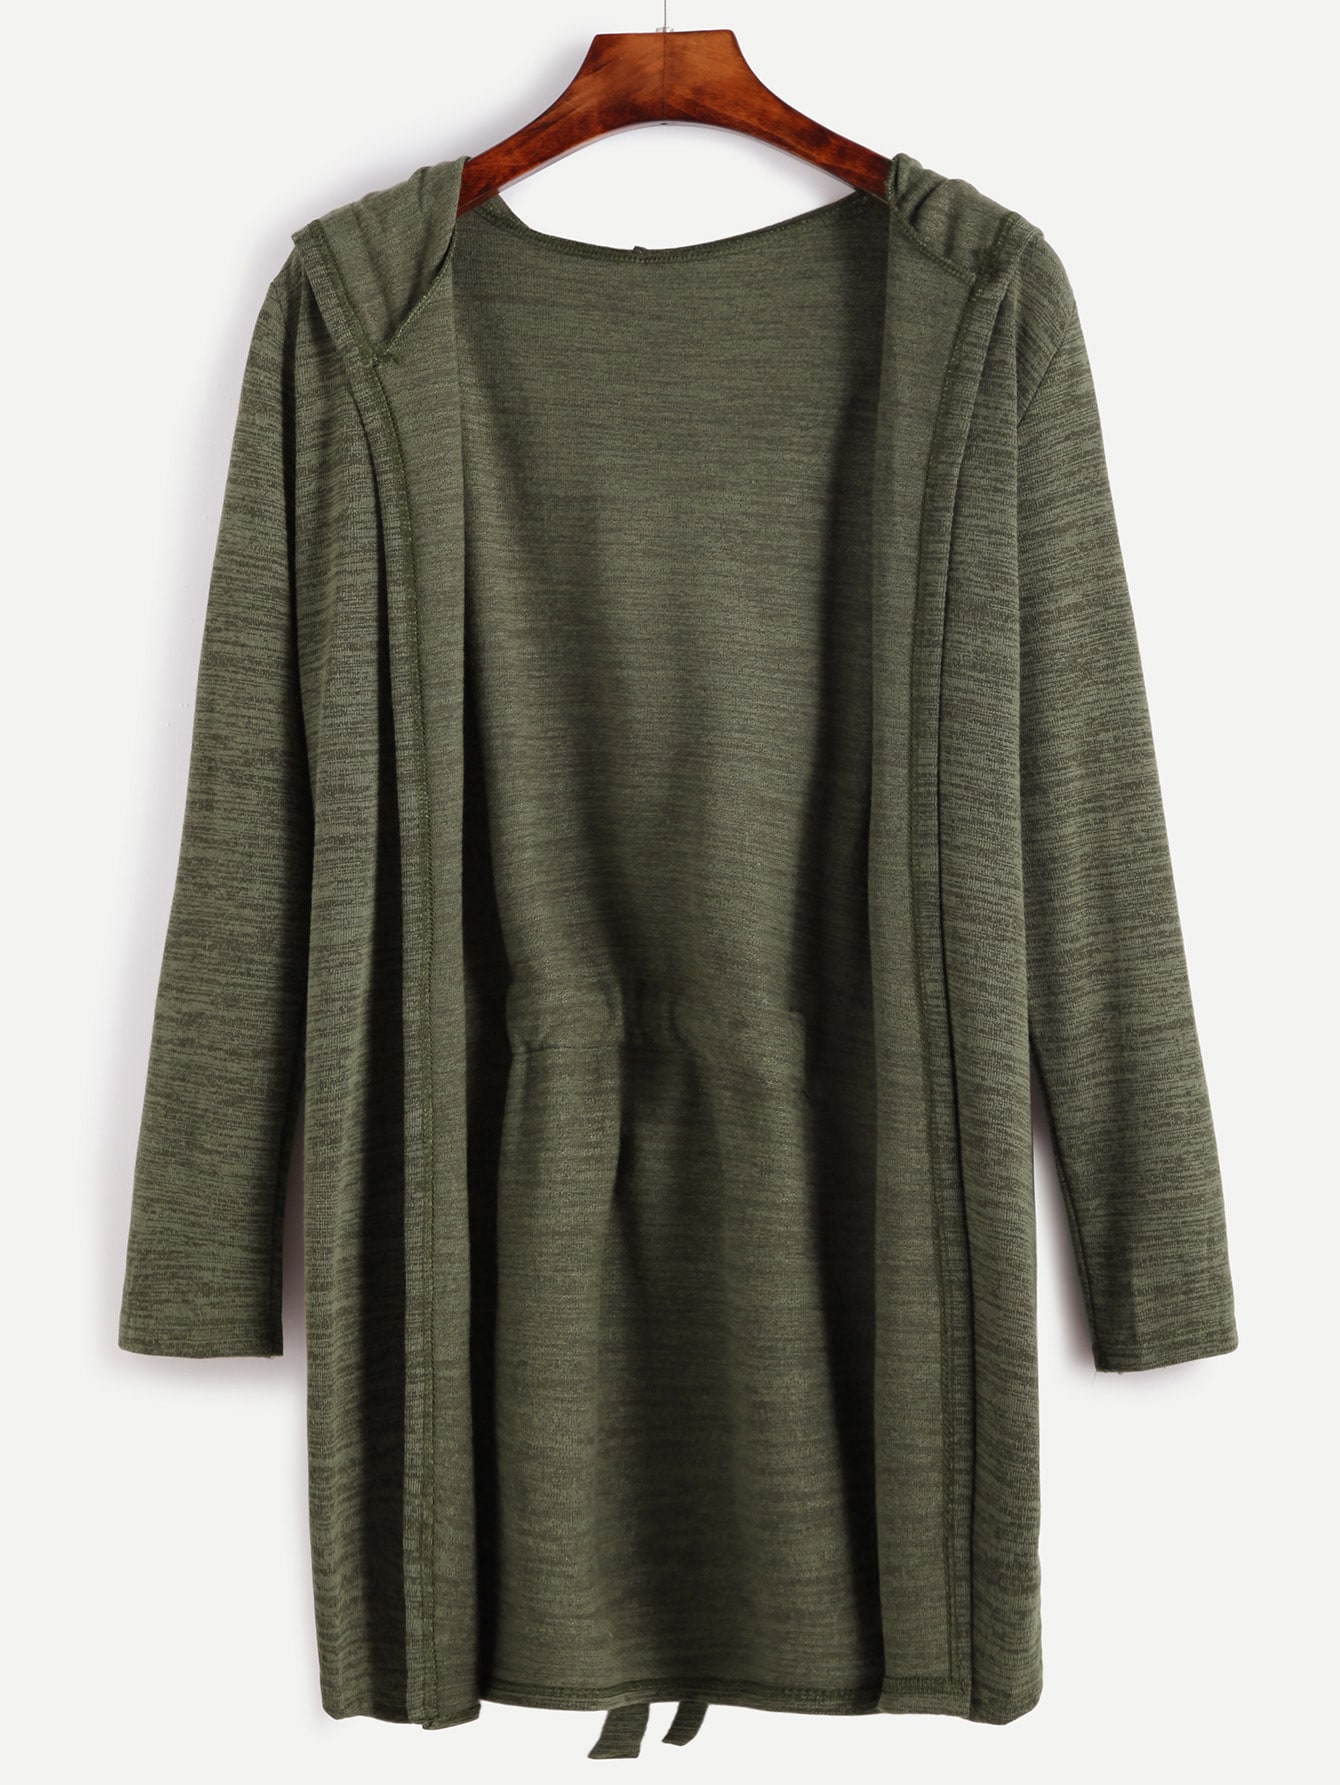 Dark Green Self Tie Hooded Cardigan -SheIn(Sheinside)